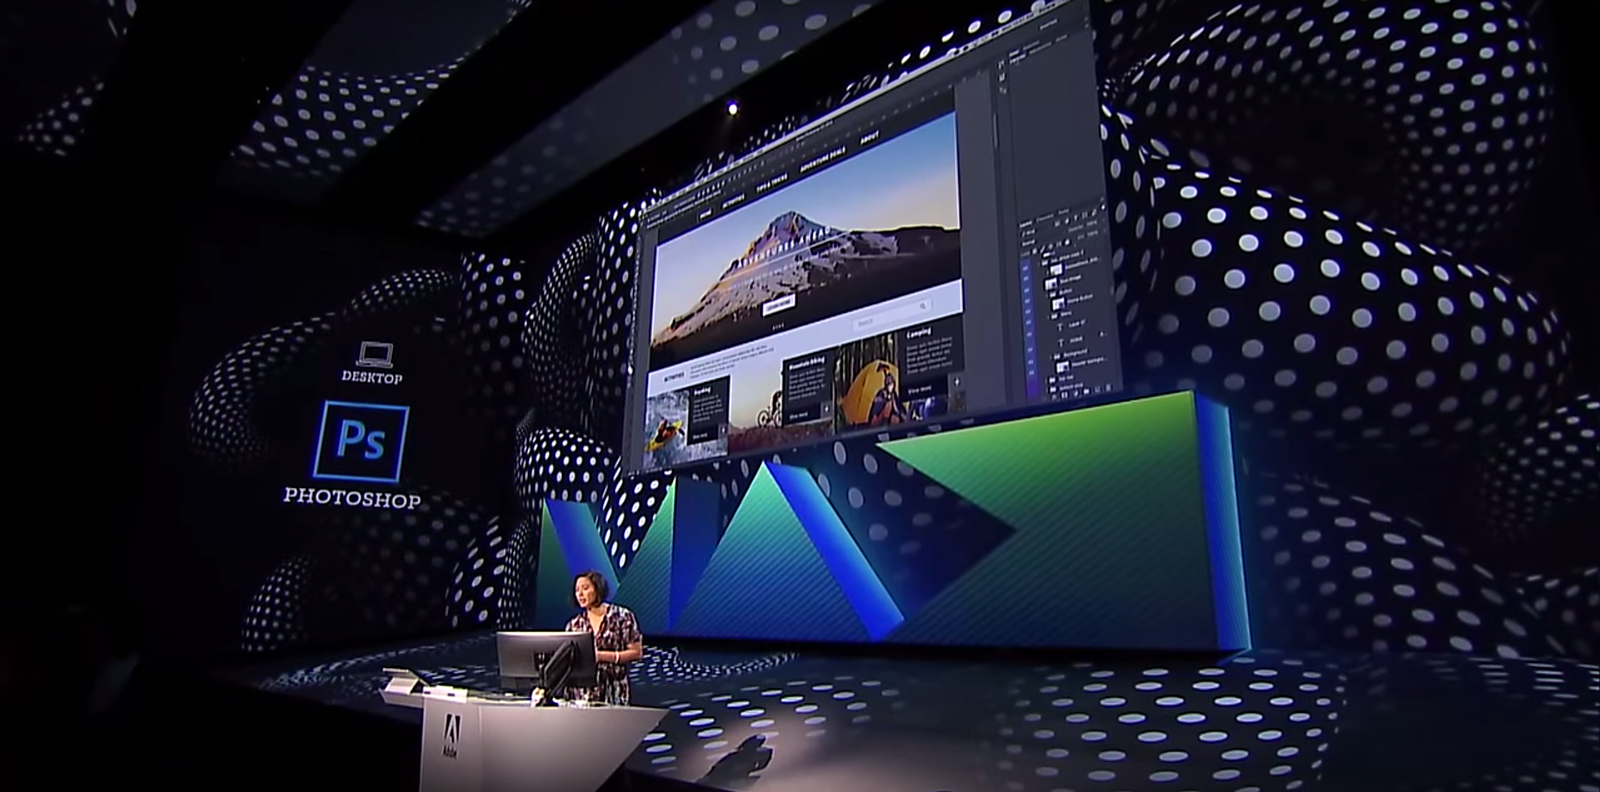 Zorana Gee, at Adobe MAX 2015 in Los Angeles. Photo by: Adobe Creative Cloud / YouTube